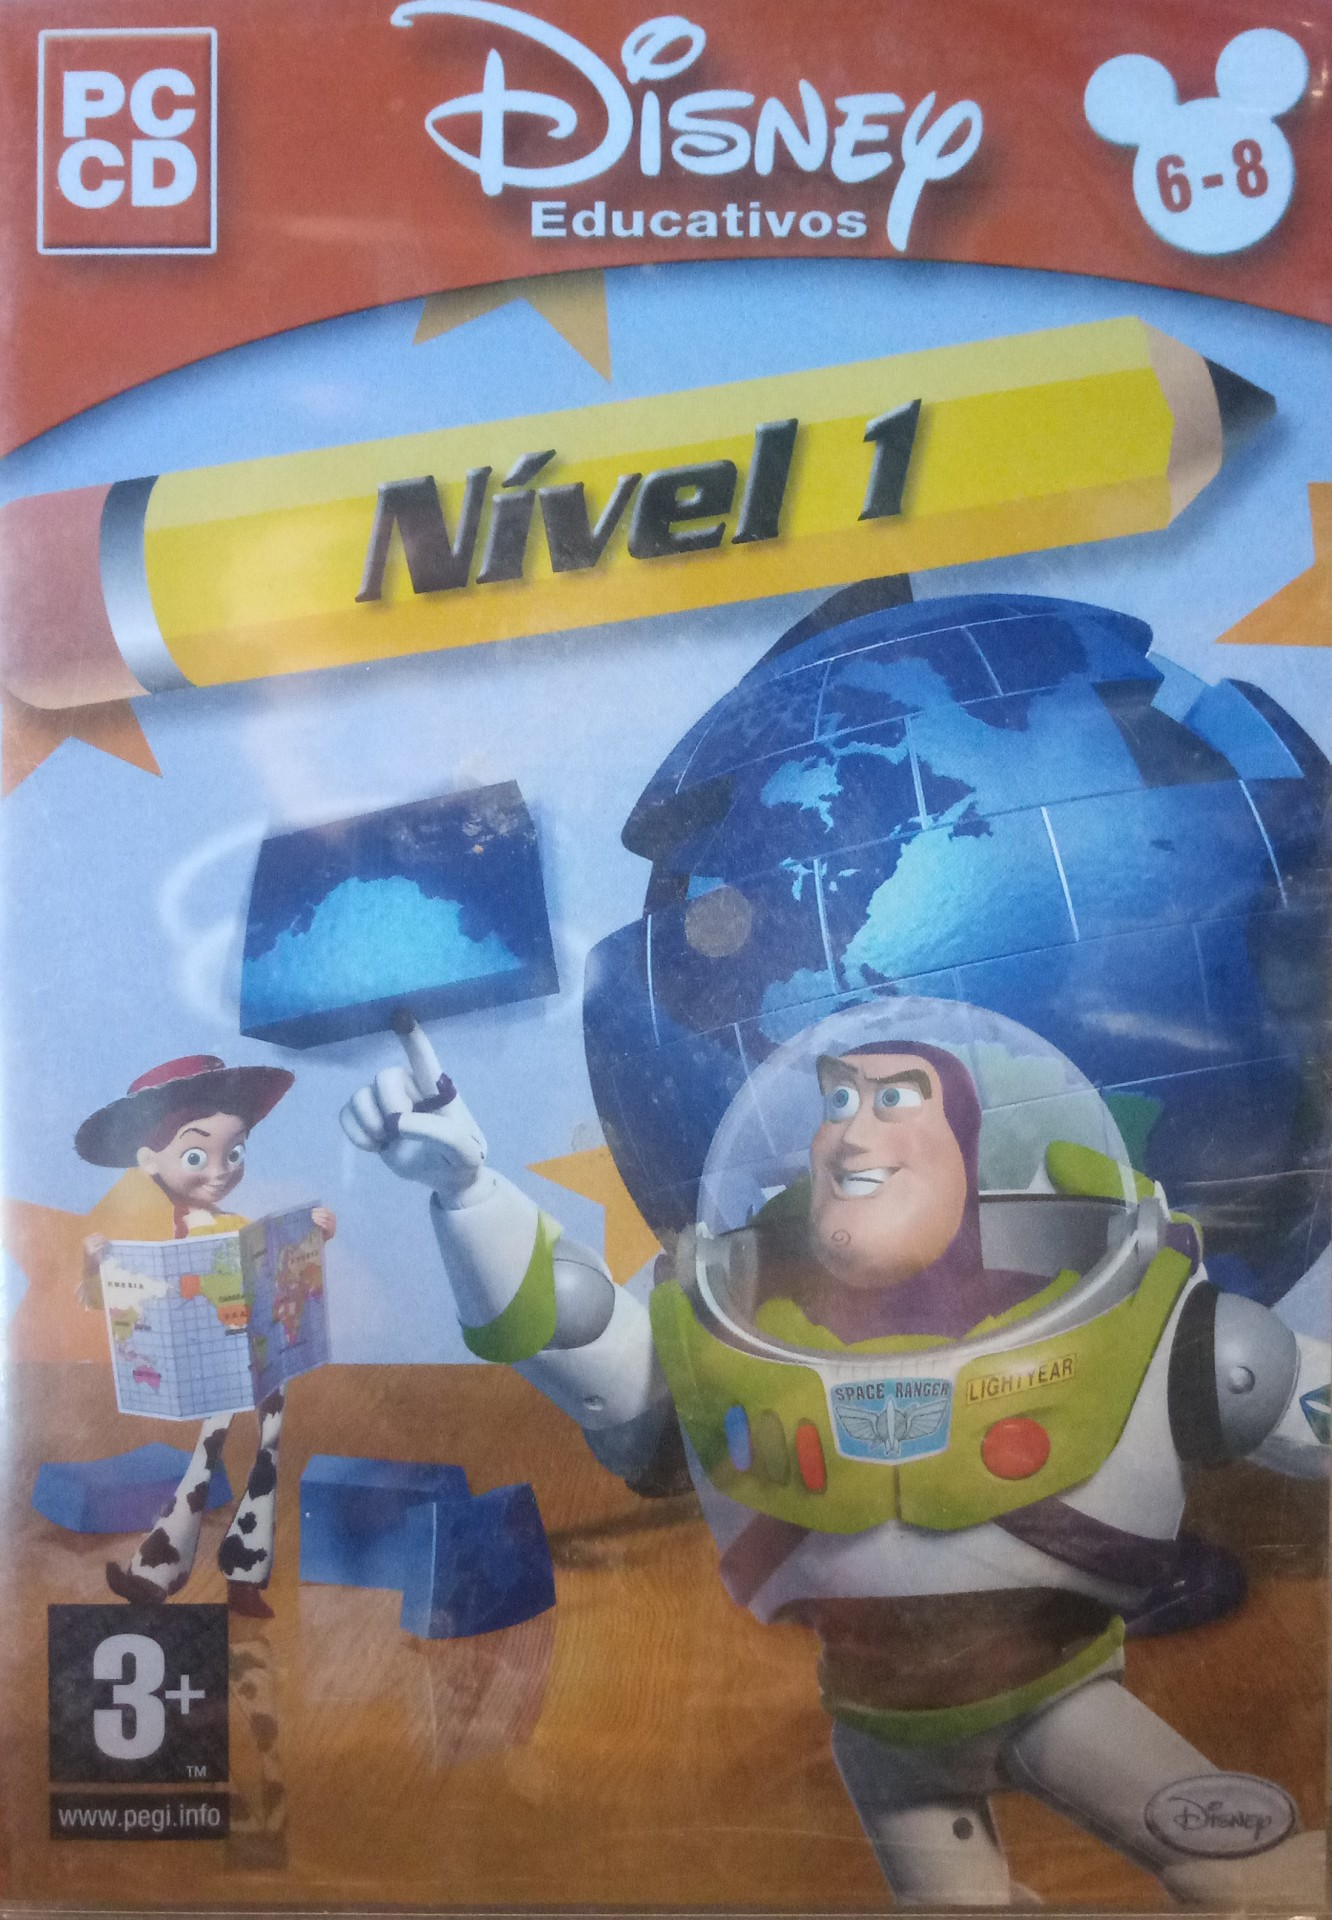 Buzz Lightyear: Nivel 1 [Completo] - WIN